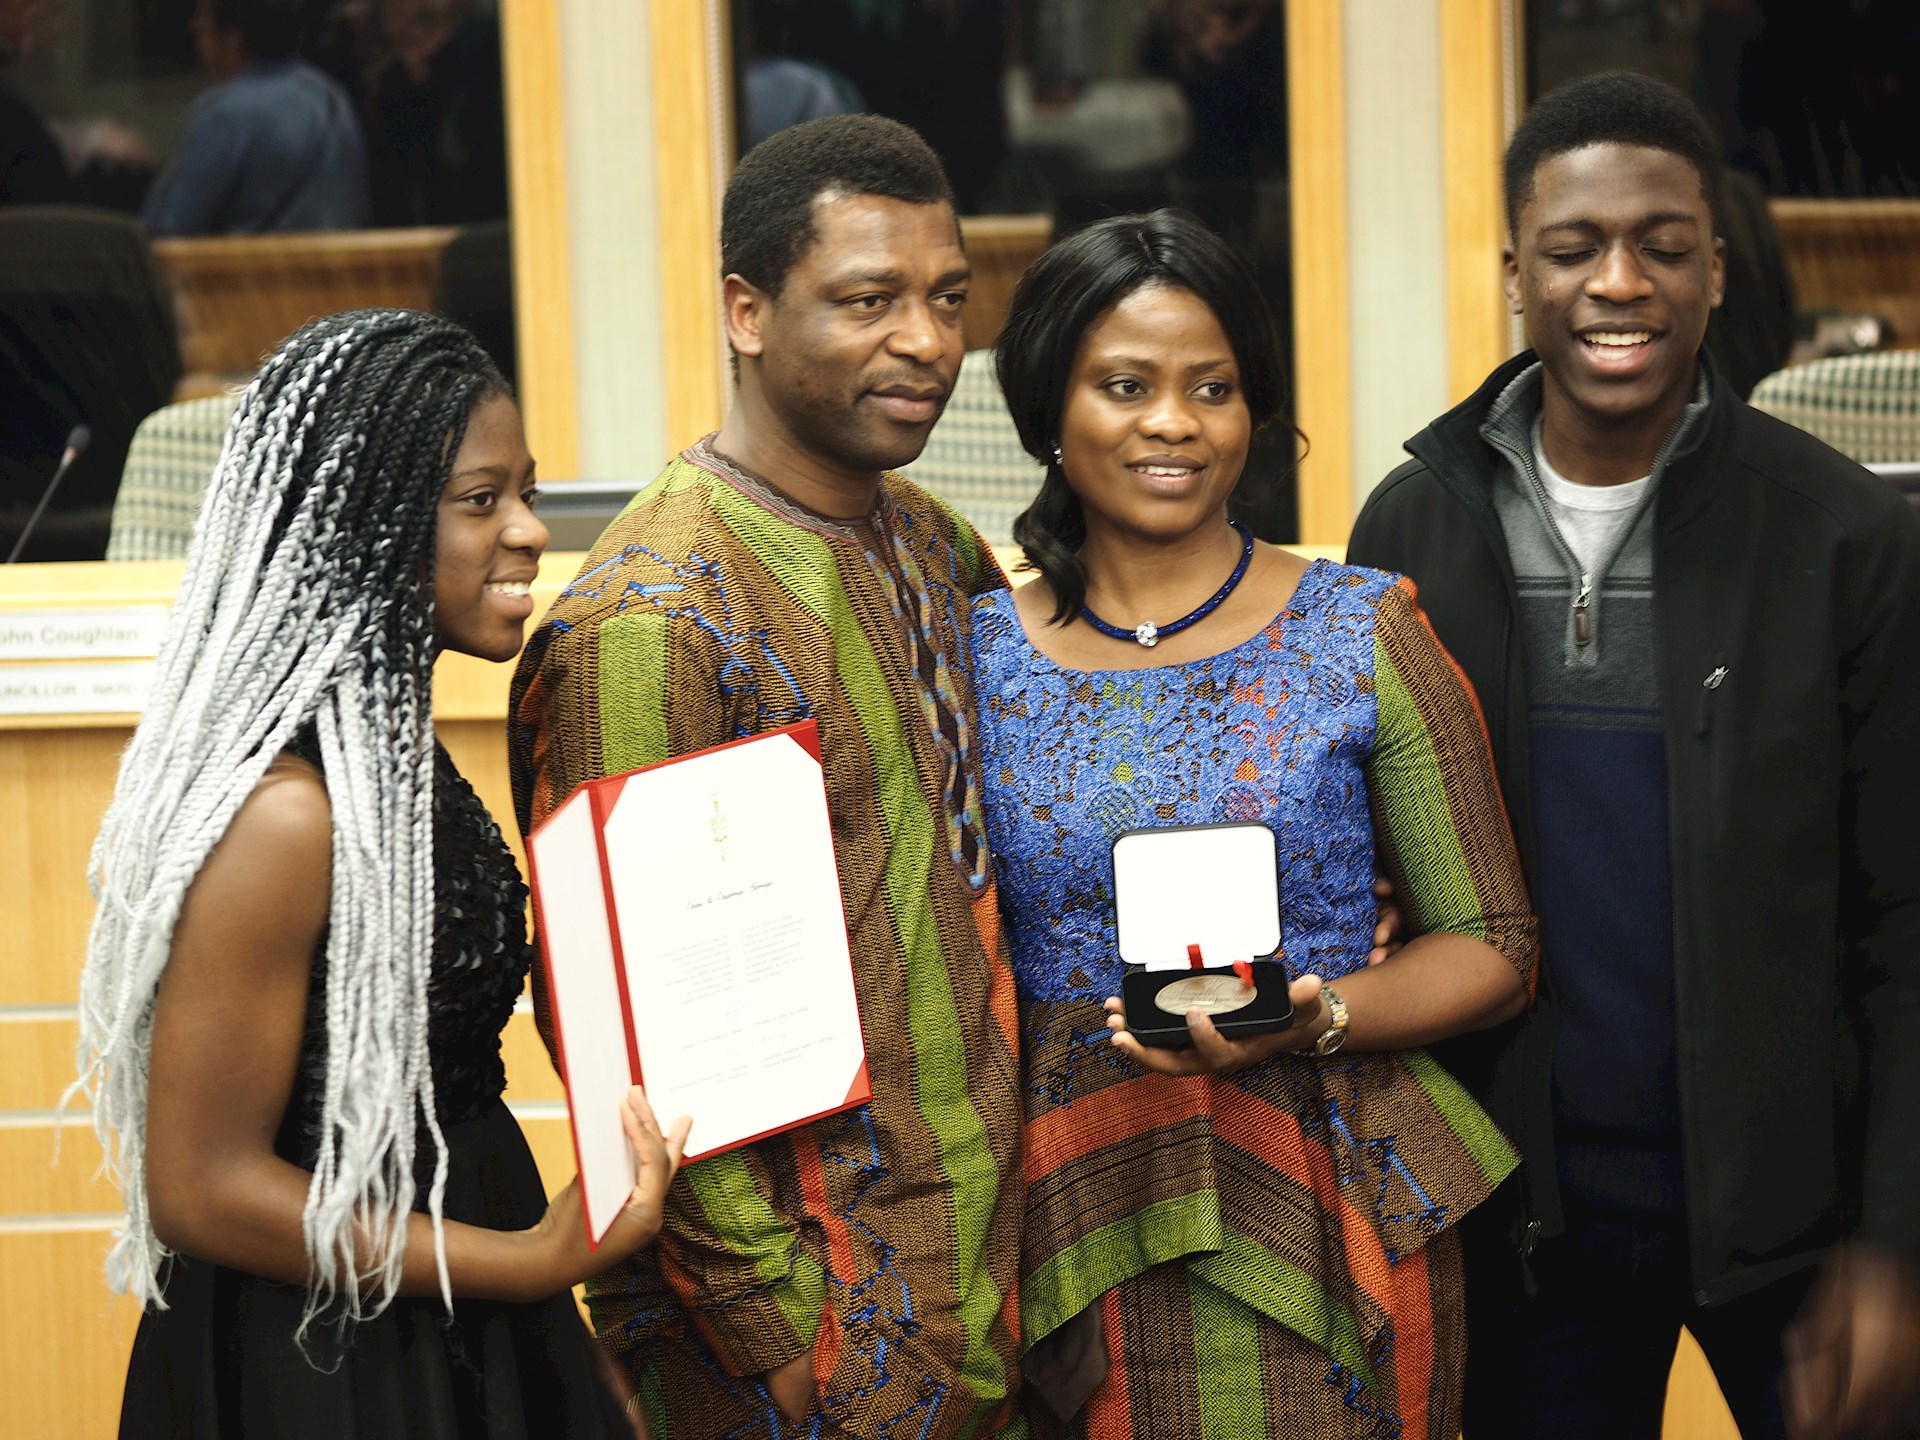 Dr. Olugbenga and Olabisi Adenuga with family, receiving their Senate Medal for volonteerism.